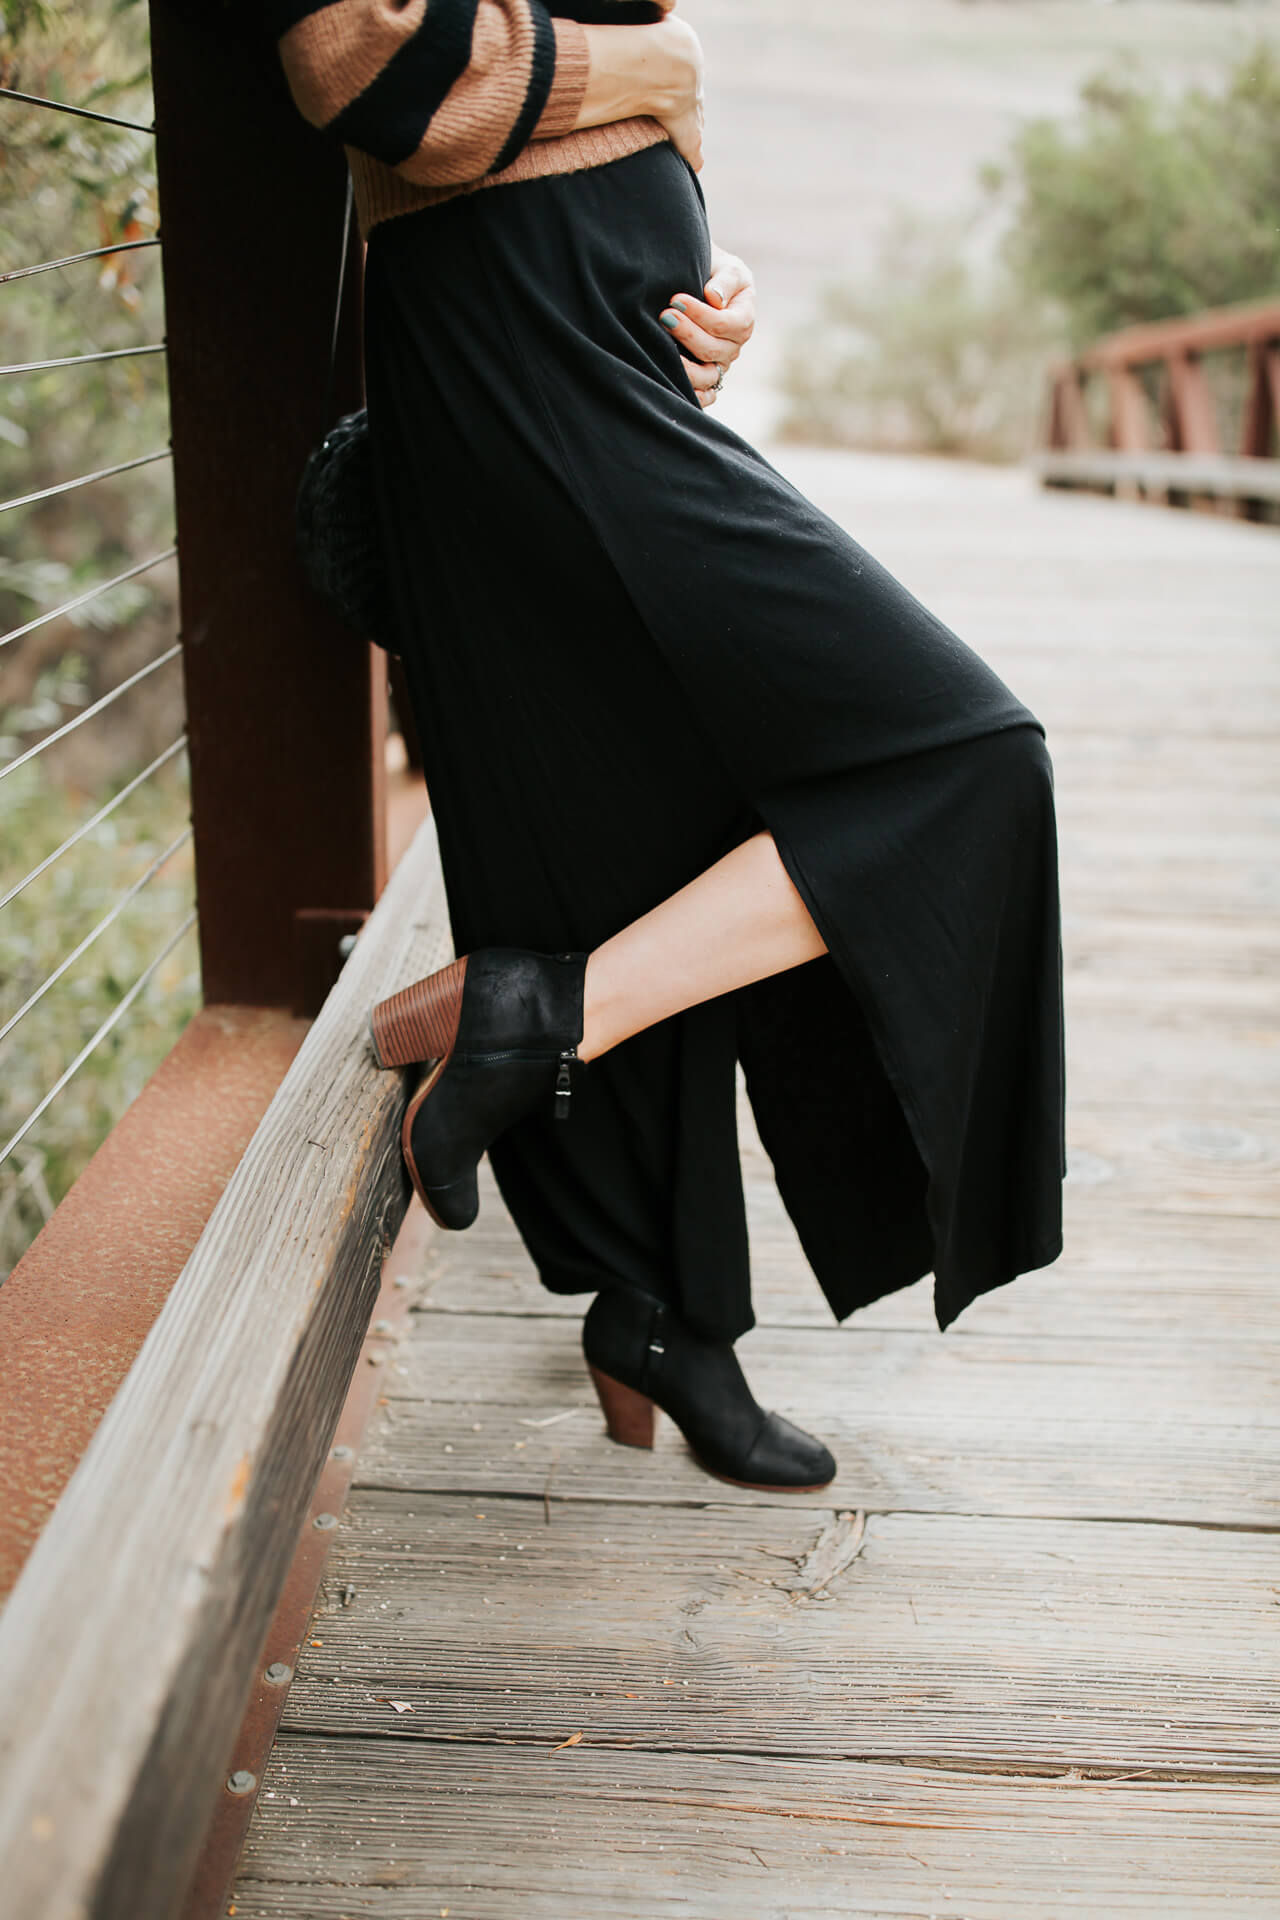 I love pairing boots with a maxi dress! | M Loves M @marmar